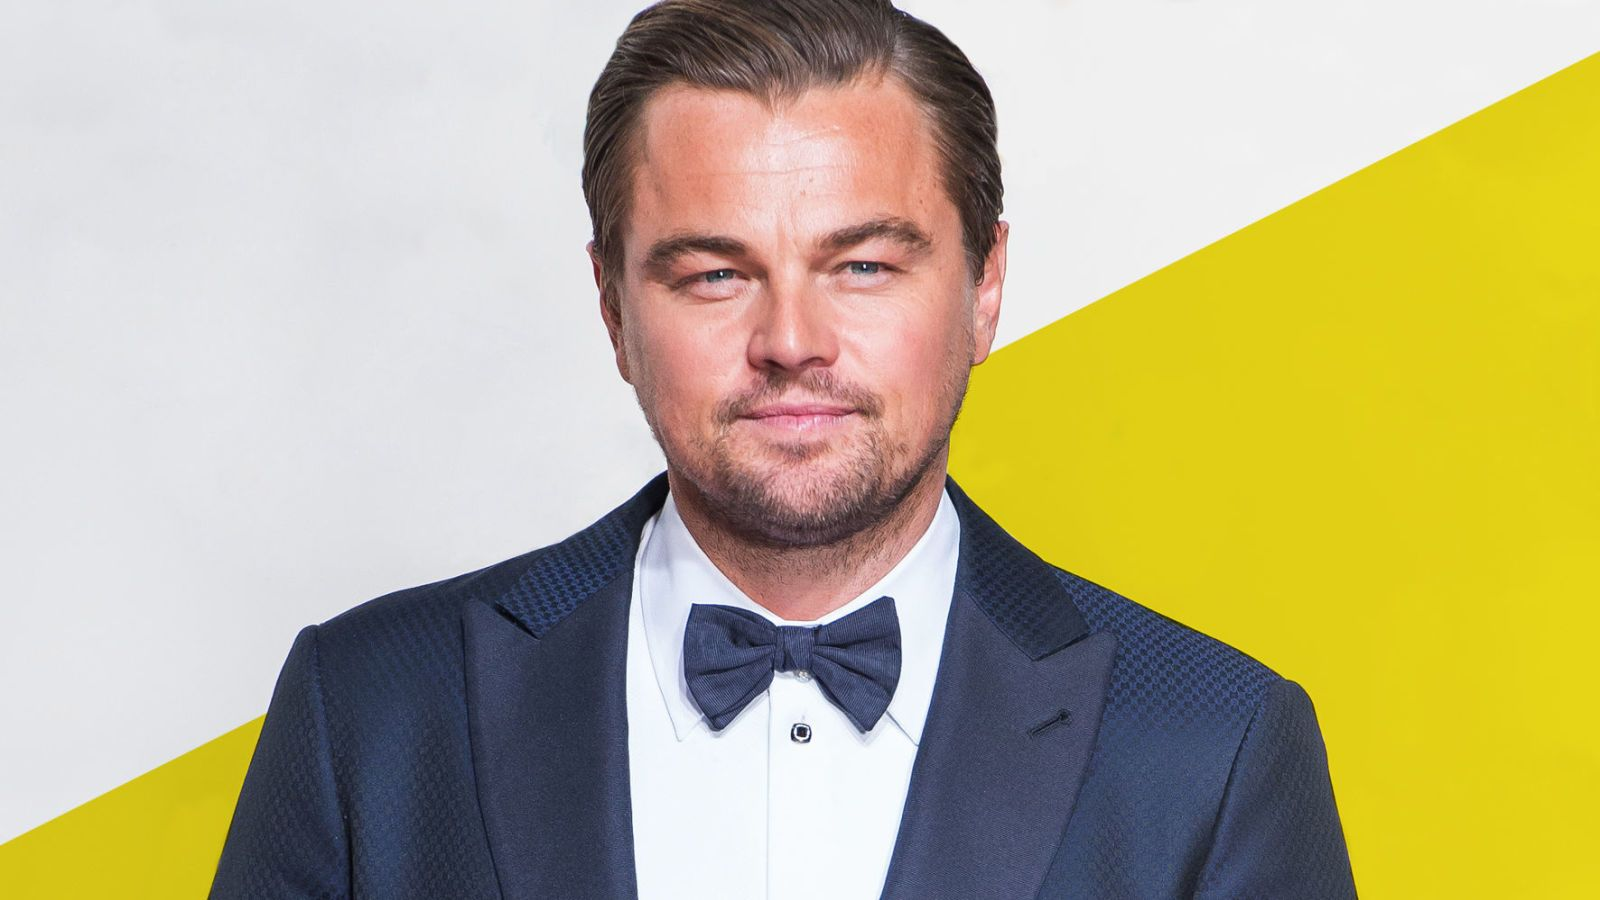 Leonardo DiCaprio Hasn't Acted in a Movie Directed by a Woman in 2 Decades